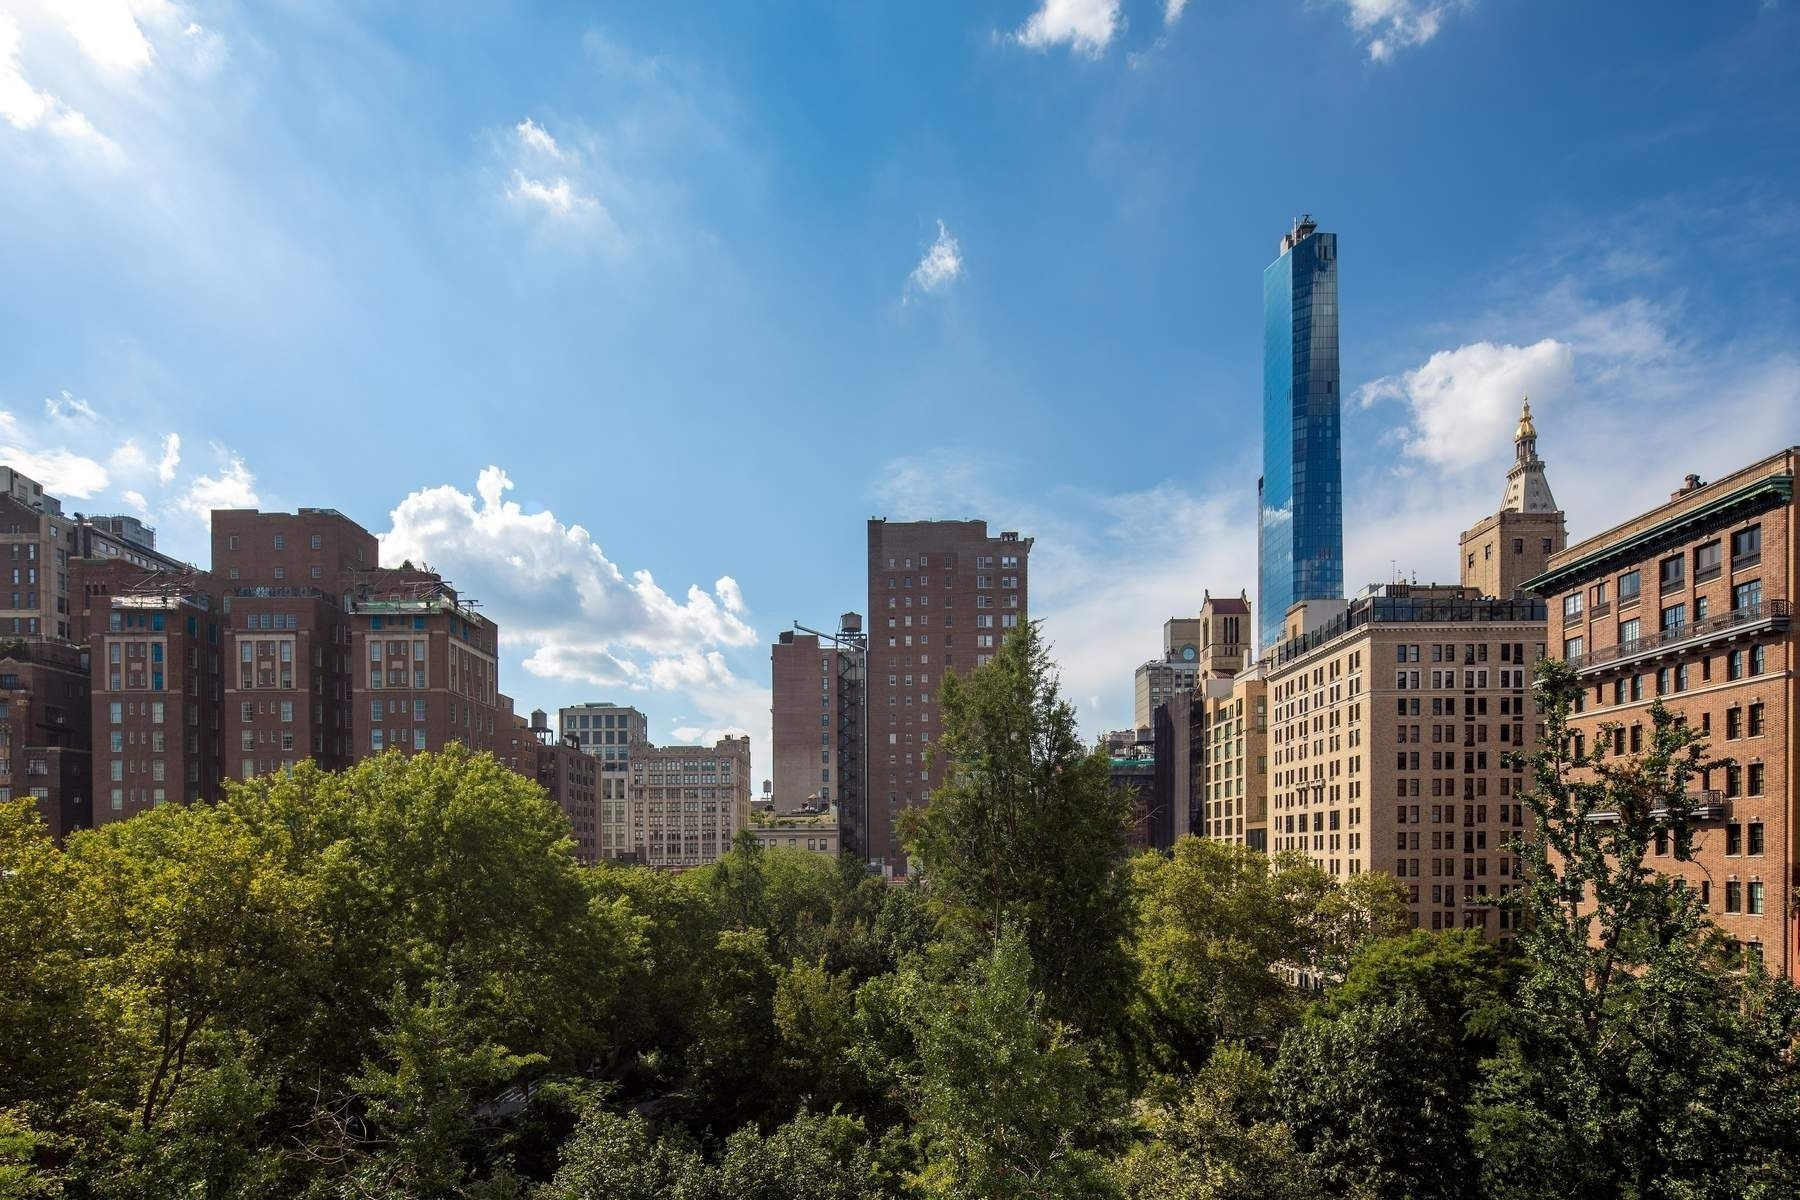 7. Condominiums for Sale at 36 Gramercy Park East, 7W Gramercy Park, New York, NY 10003